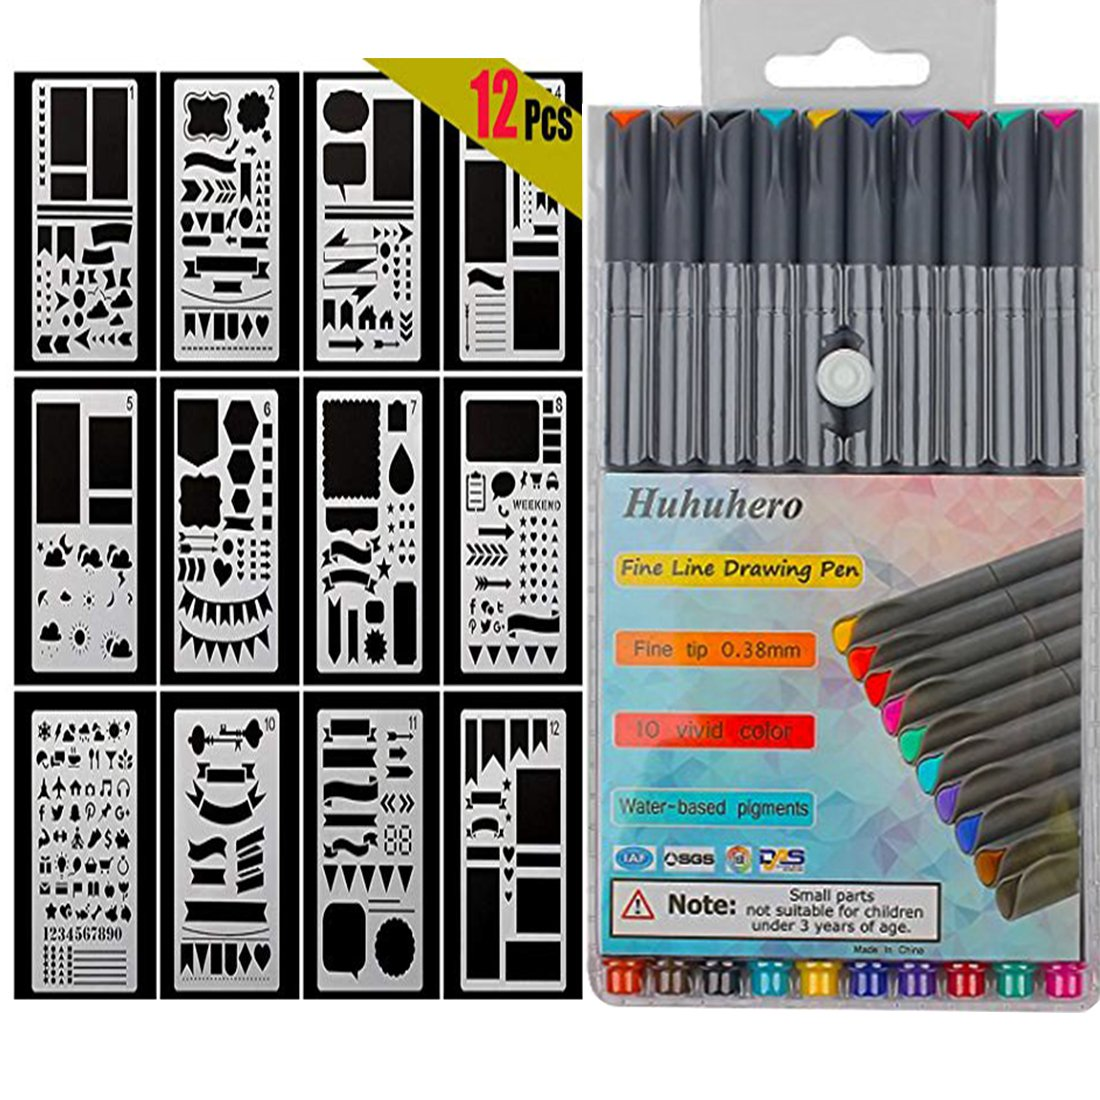 10-Colors Bullet Journal Pens with 12-Pieces Drawing Stencils Perfect for Planner Journaling Writing Note Taking Notebook Diary Calendar and School Office Supplies (22 PCS) Huhuhero